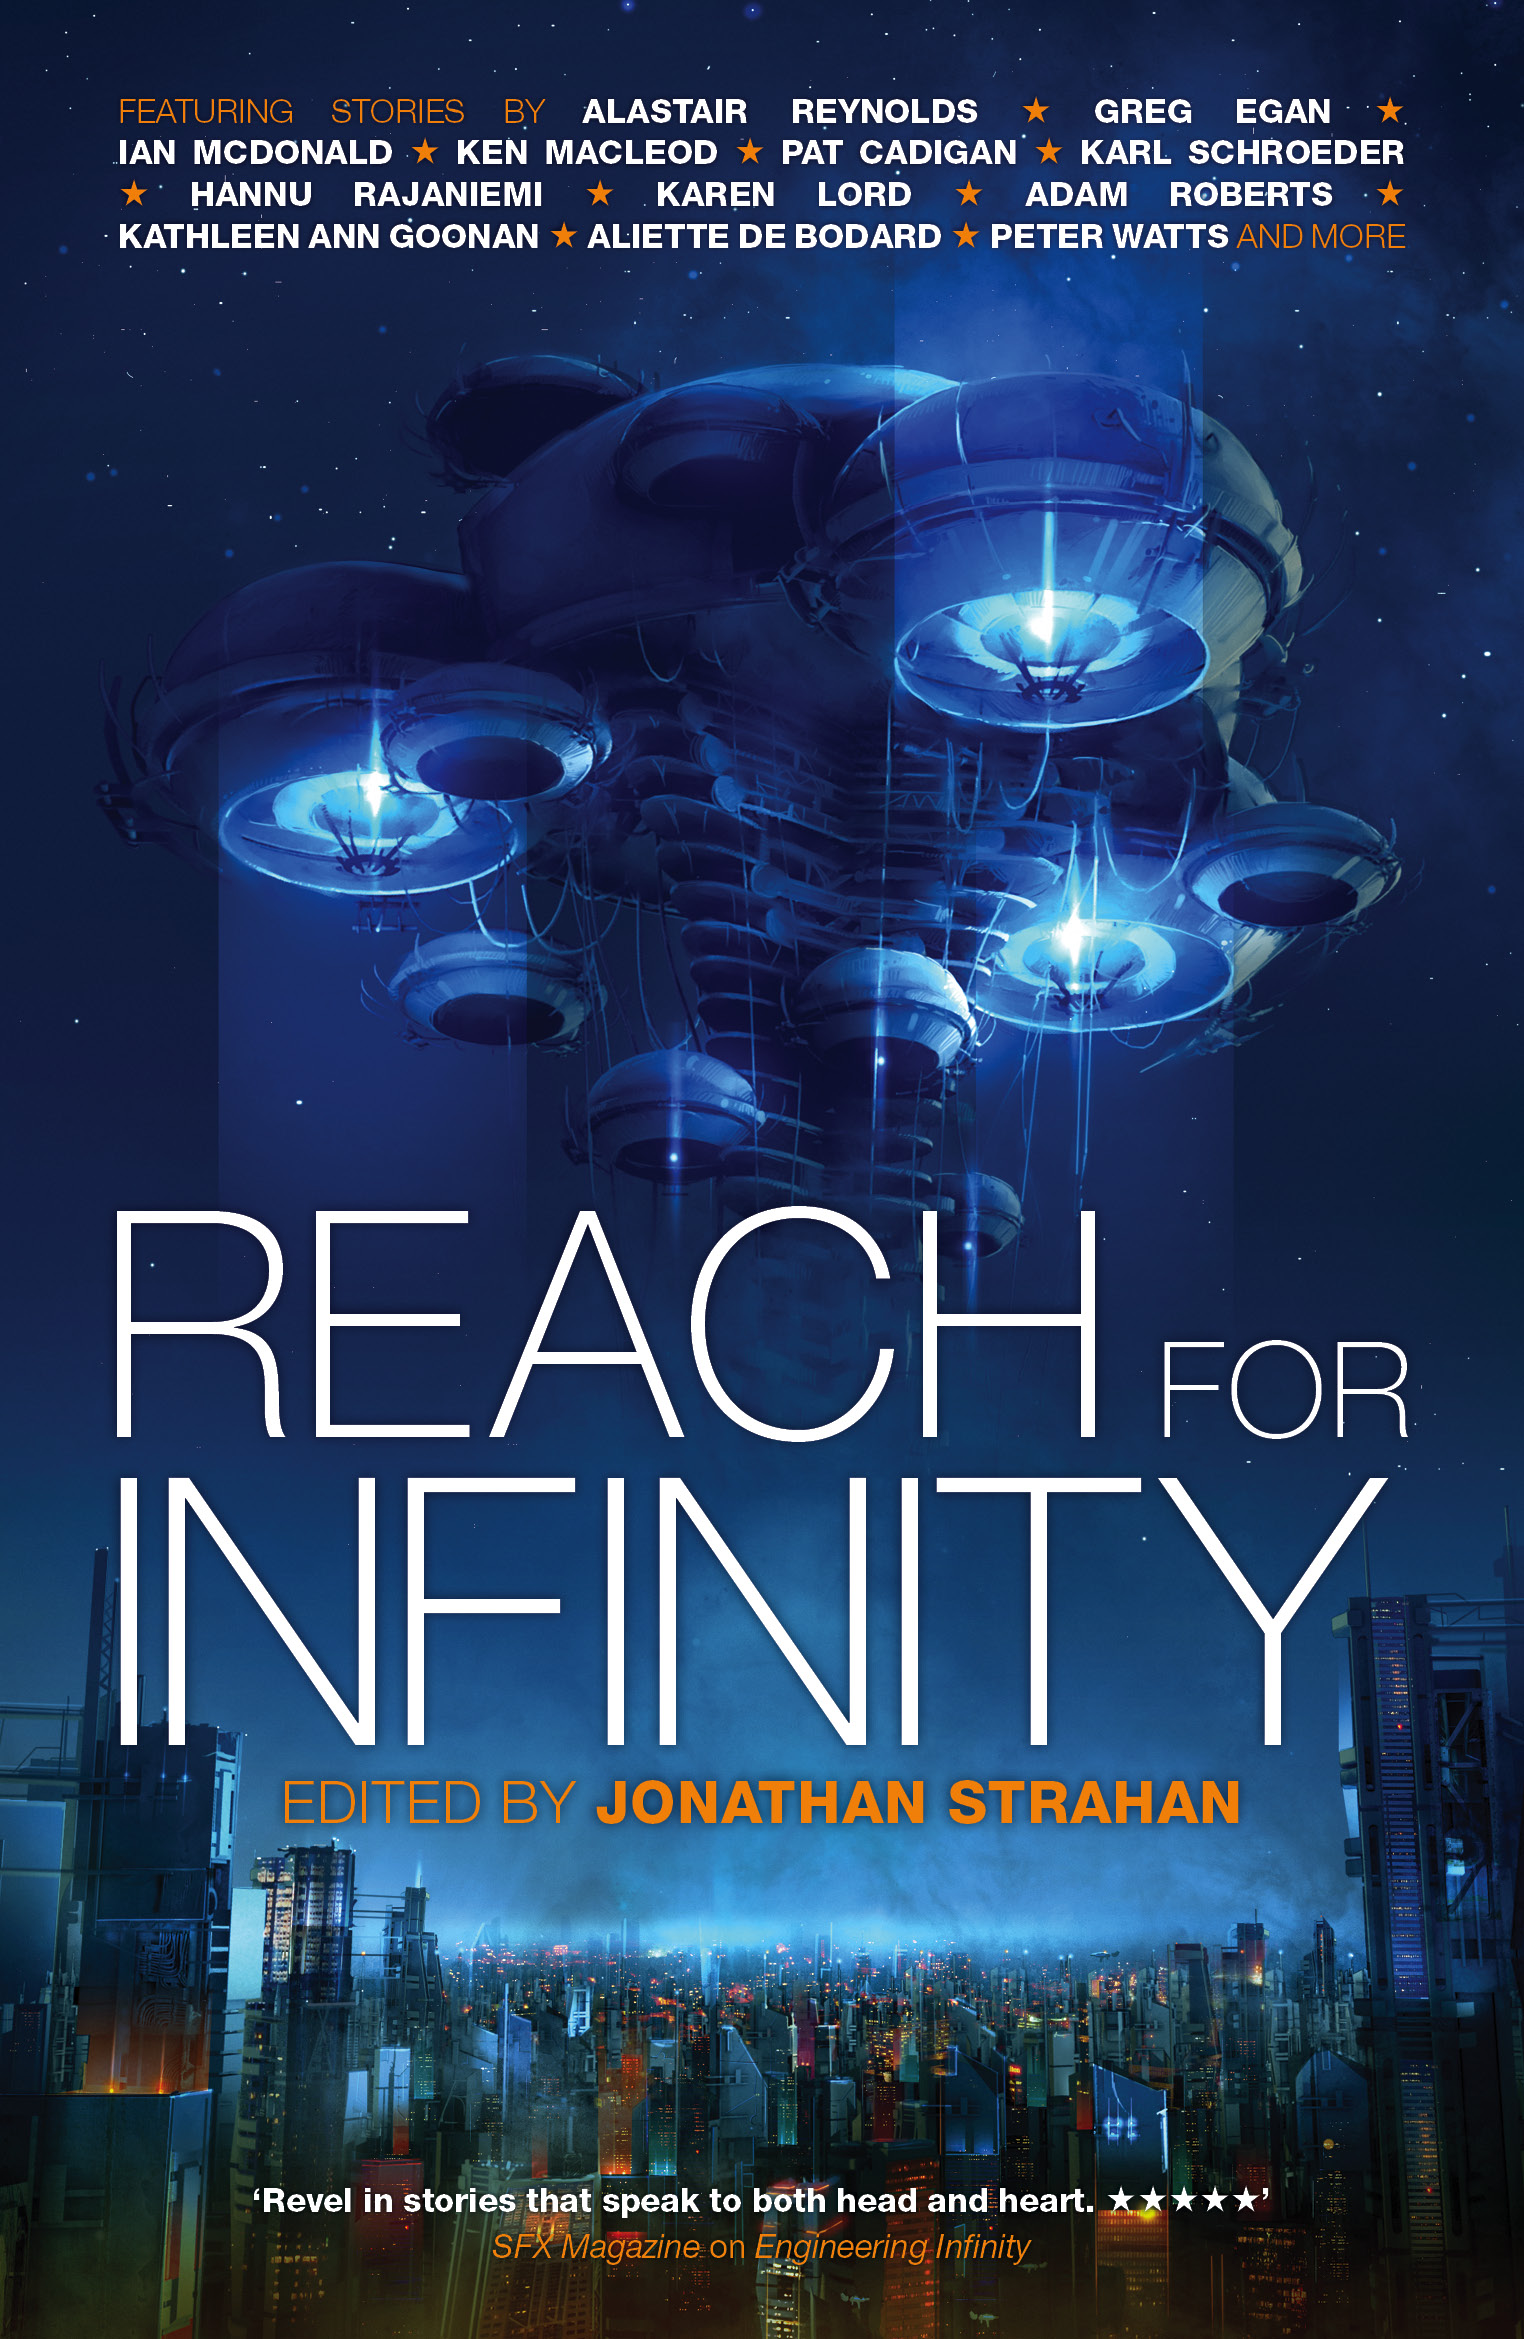 Reach-for-infinity-9781781082034_hr